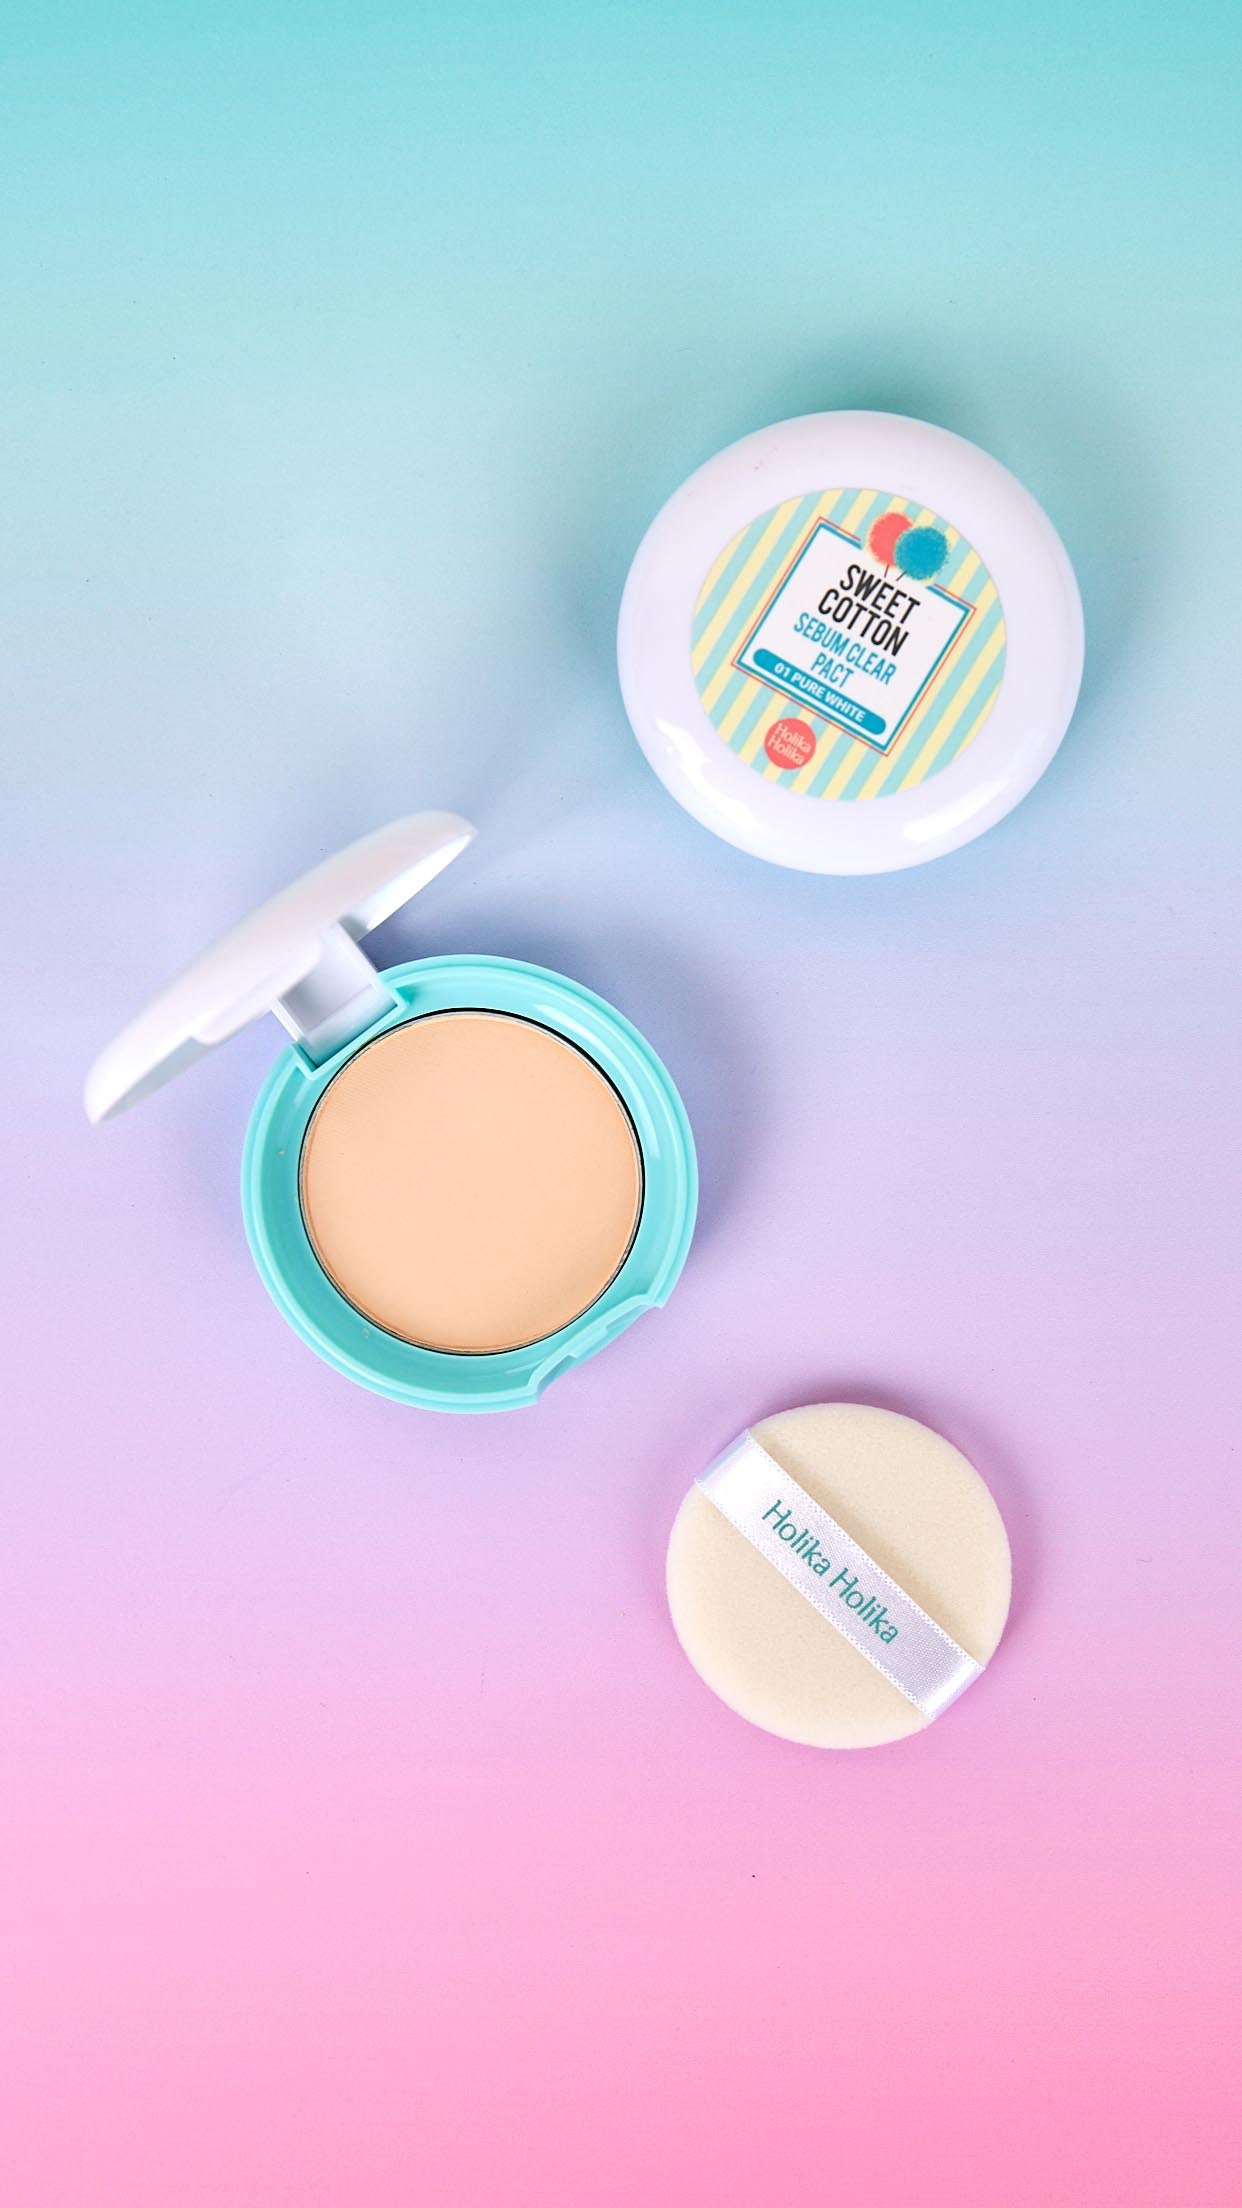 Sweet Cotton Sebum Clear Pact